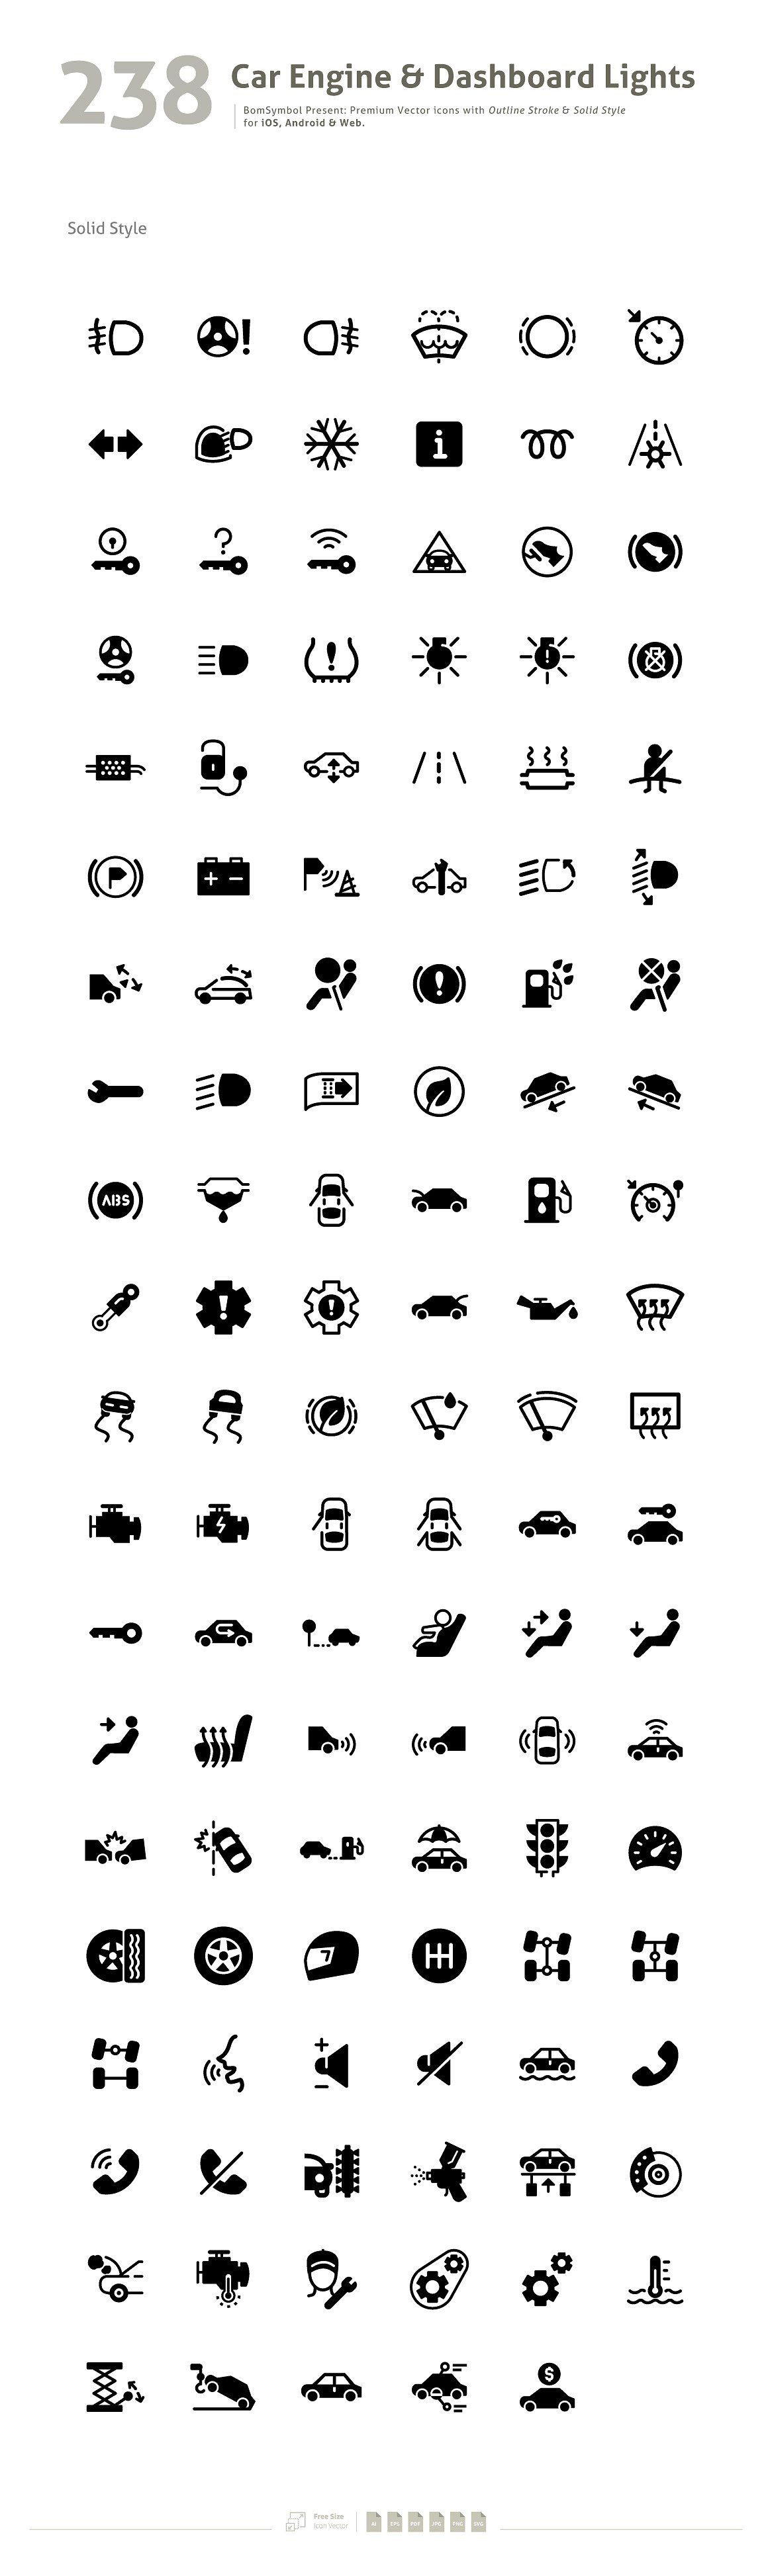 Car engine dashboard lights symbol icons 3 icon set car engine dashboard lights symbol icons 3 biocorpaavc